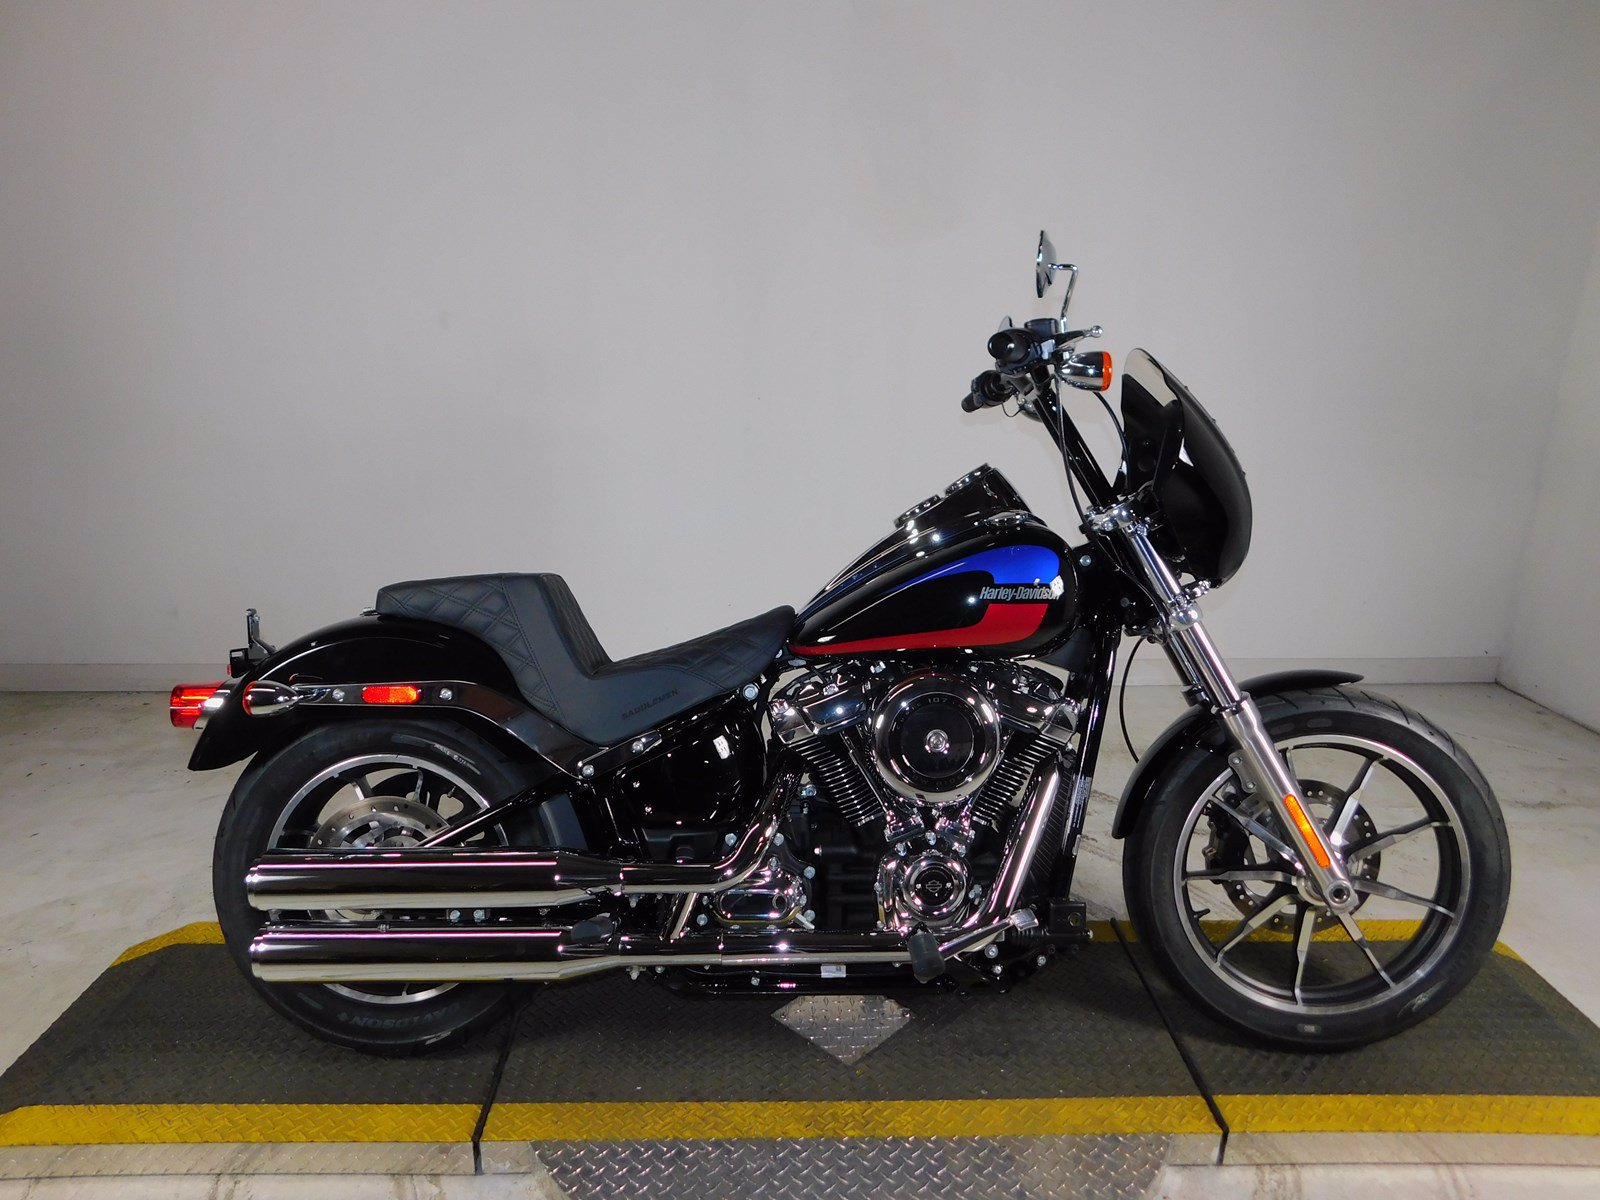 New 2019 Harley-Davidson Softail Low Rider FXLR